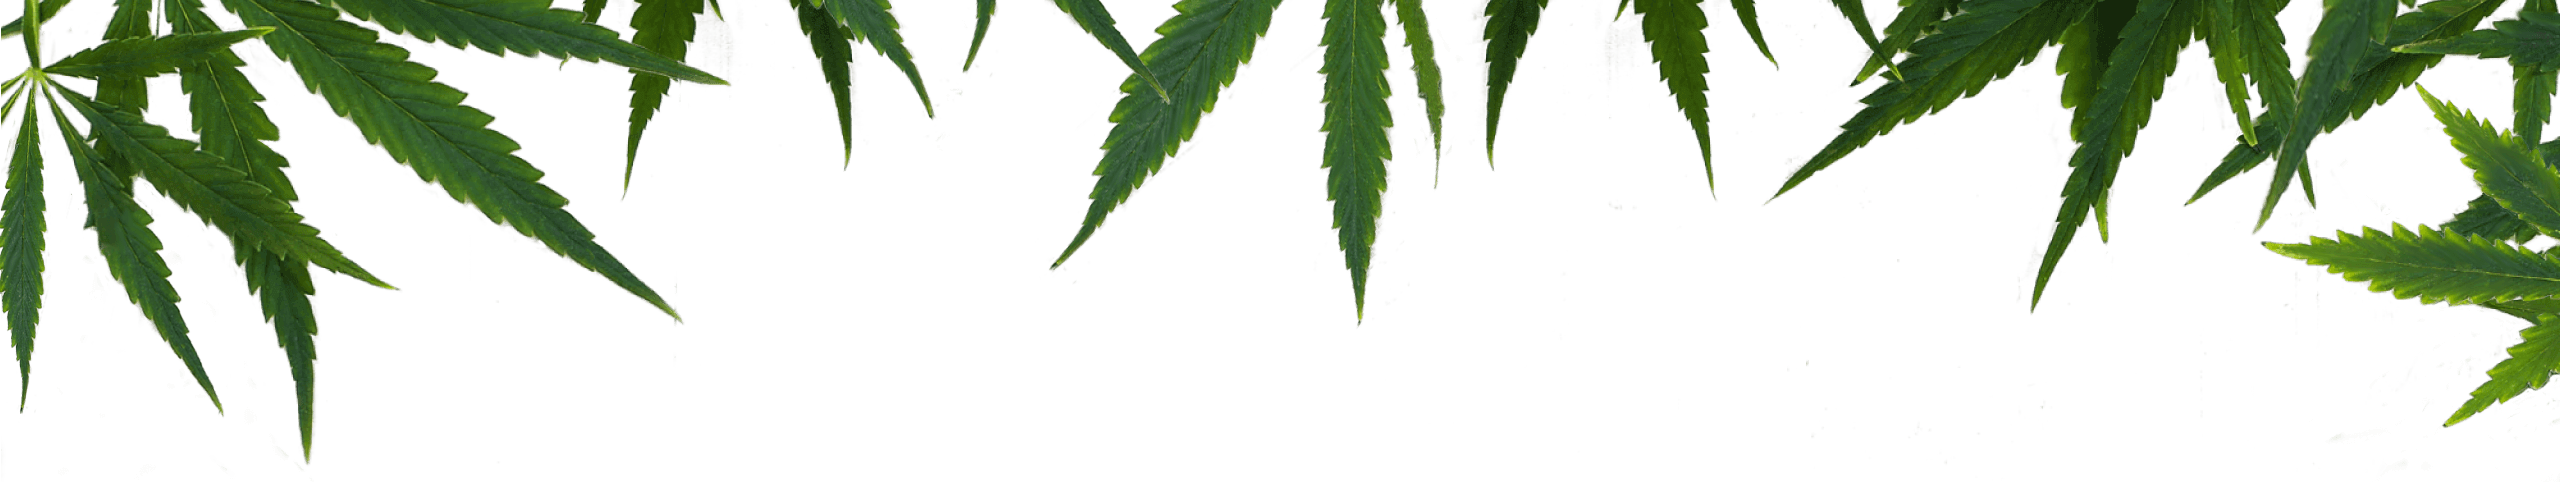 hemp leaves divider